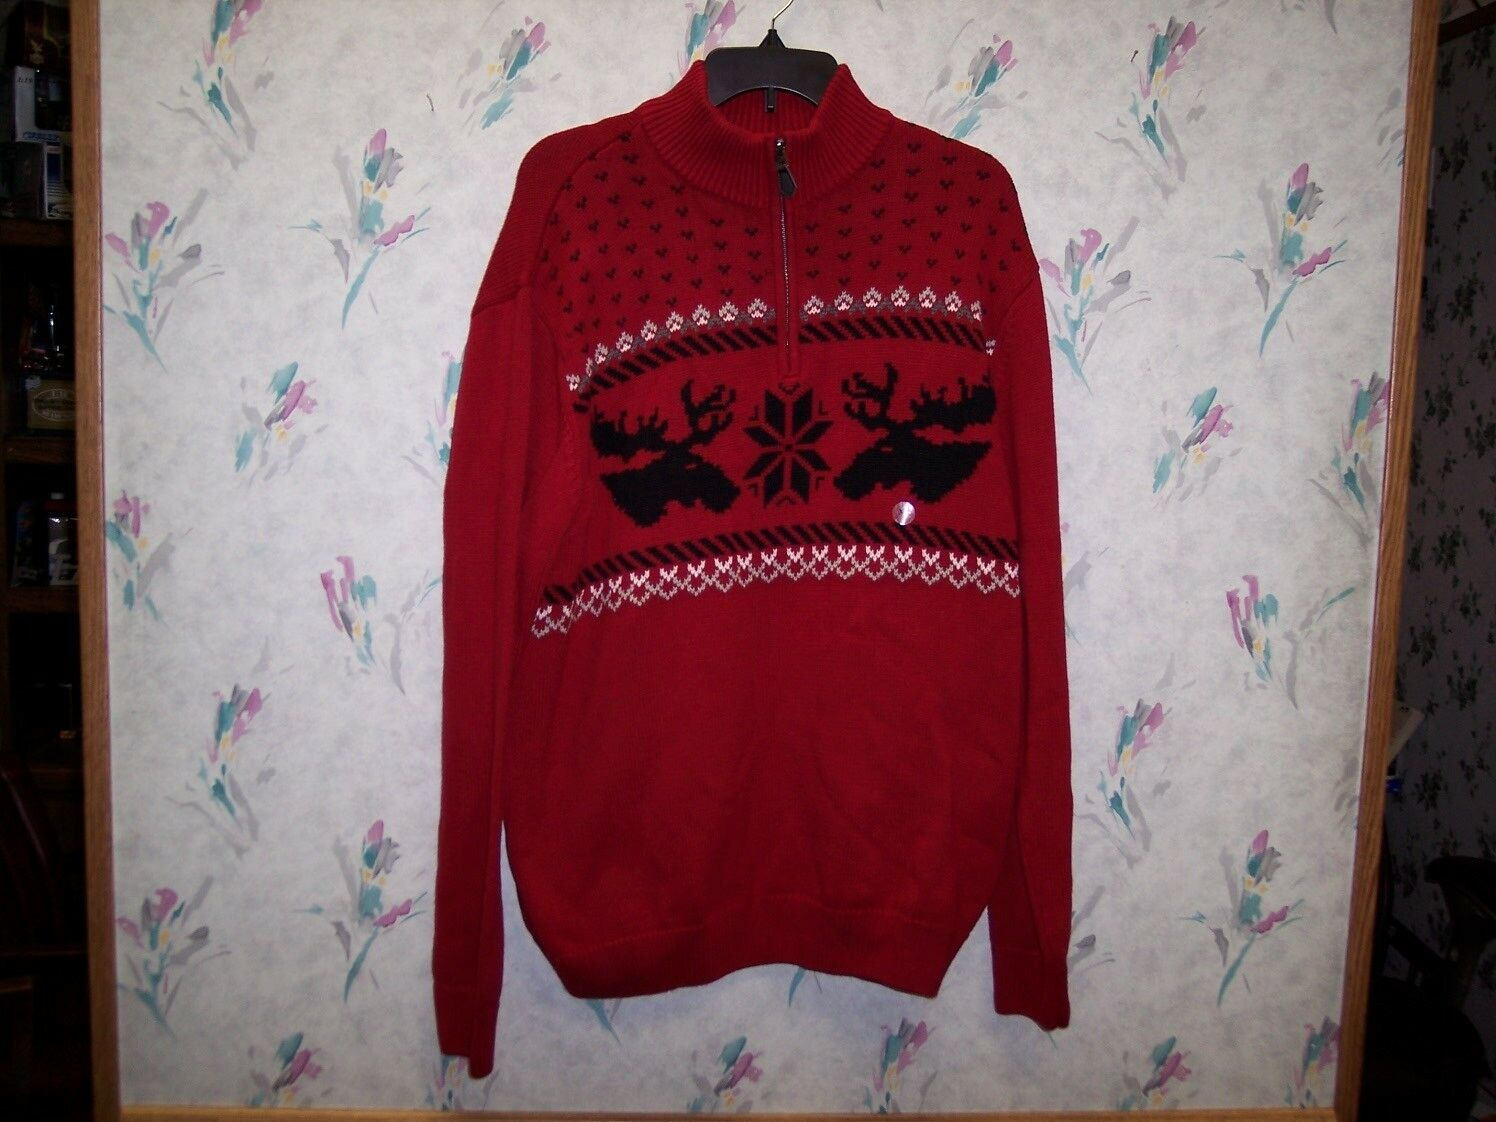 CHAPS MEN'S RED HOLIDAY SWEATER SIZE XL BRAND NEW WITH TAG